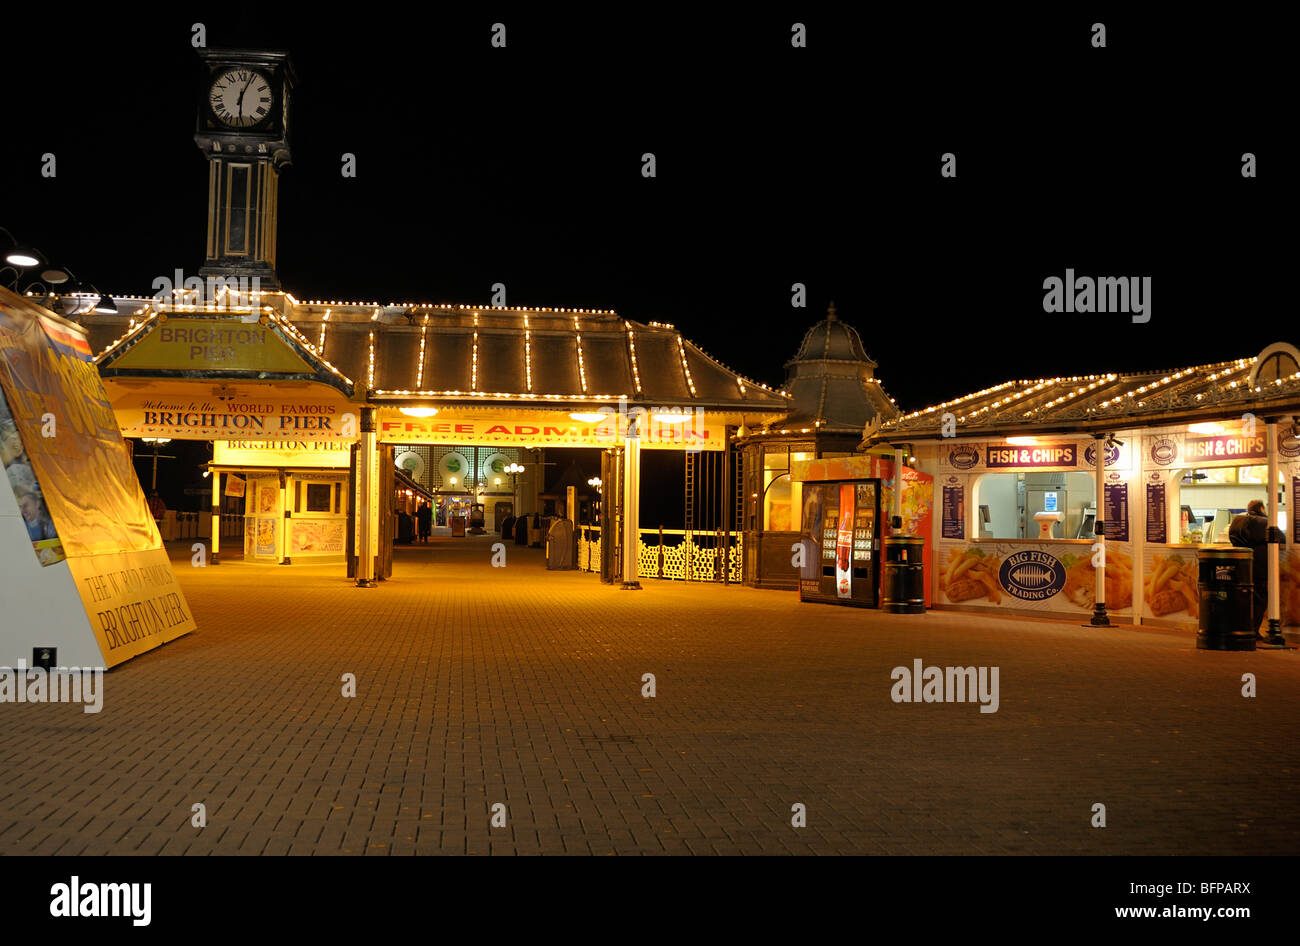 The entrance to Brighton pier at night - Stock Image